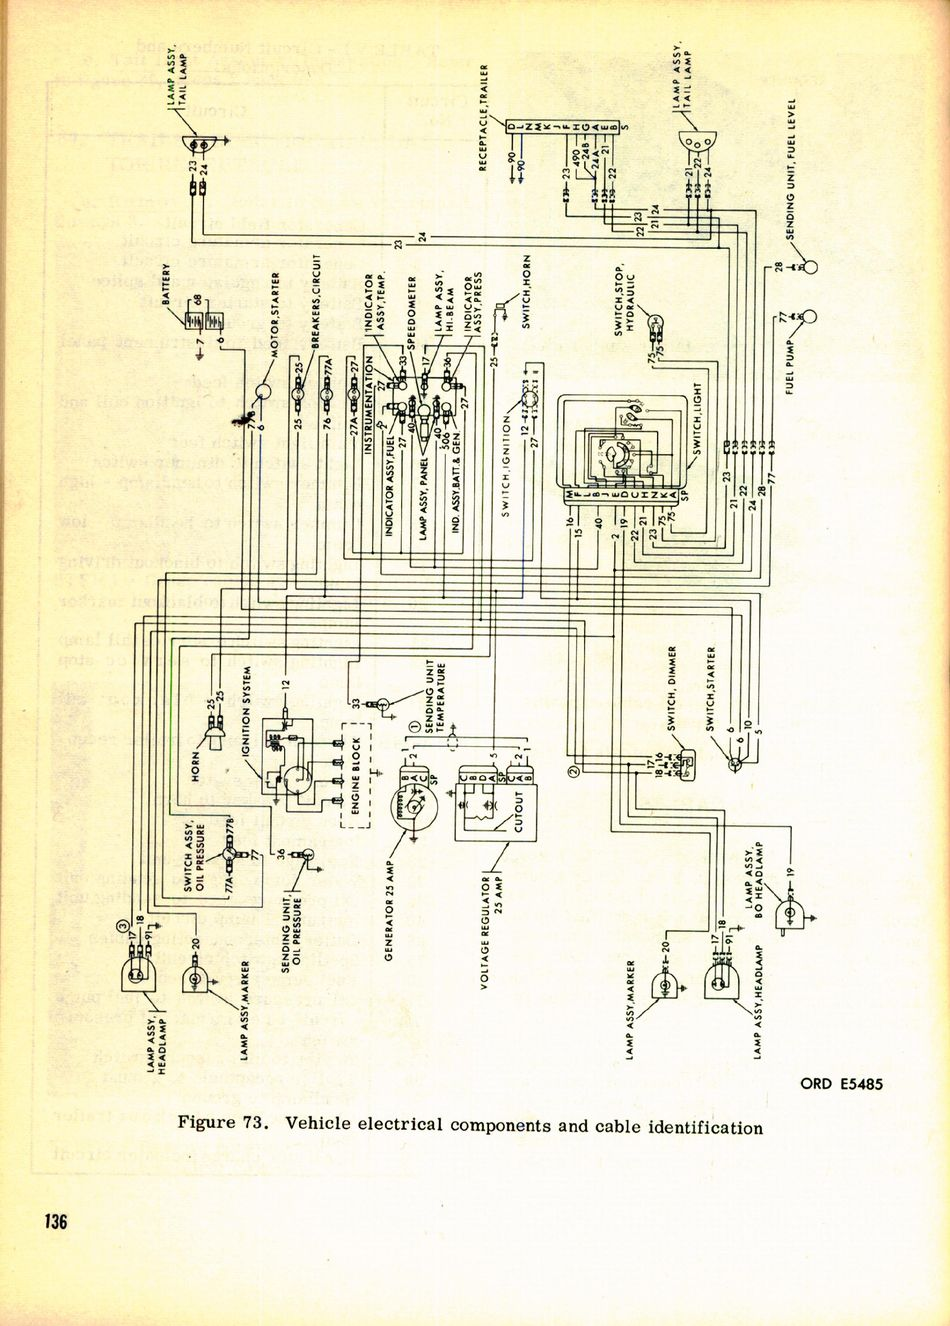 hight resolution of m151 wiring diagram wiring diagram portal dodge m37 wiring diagram m151 wiring diagram